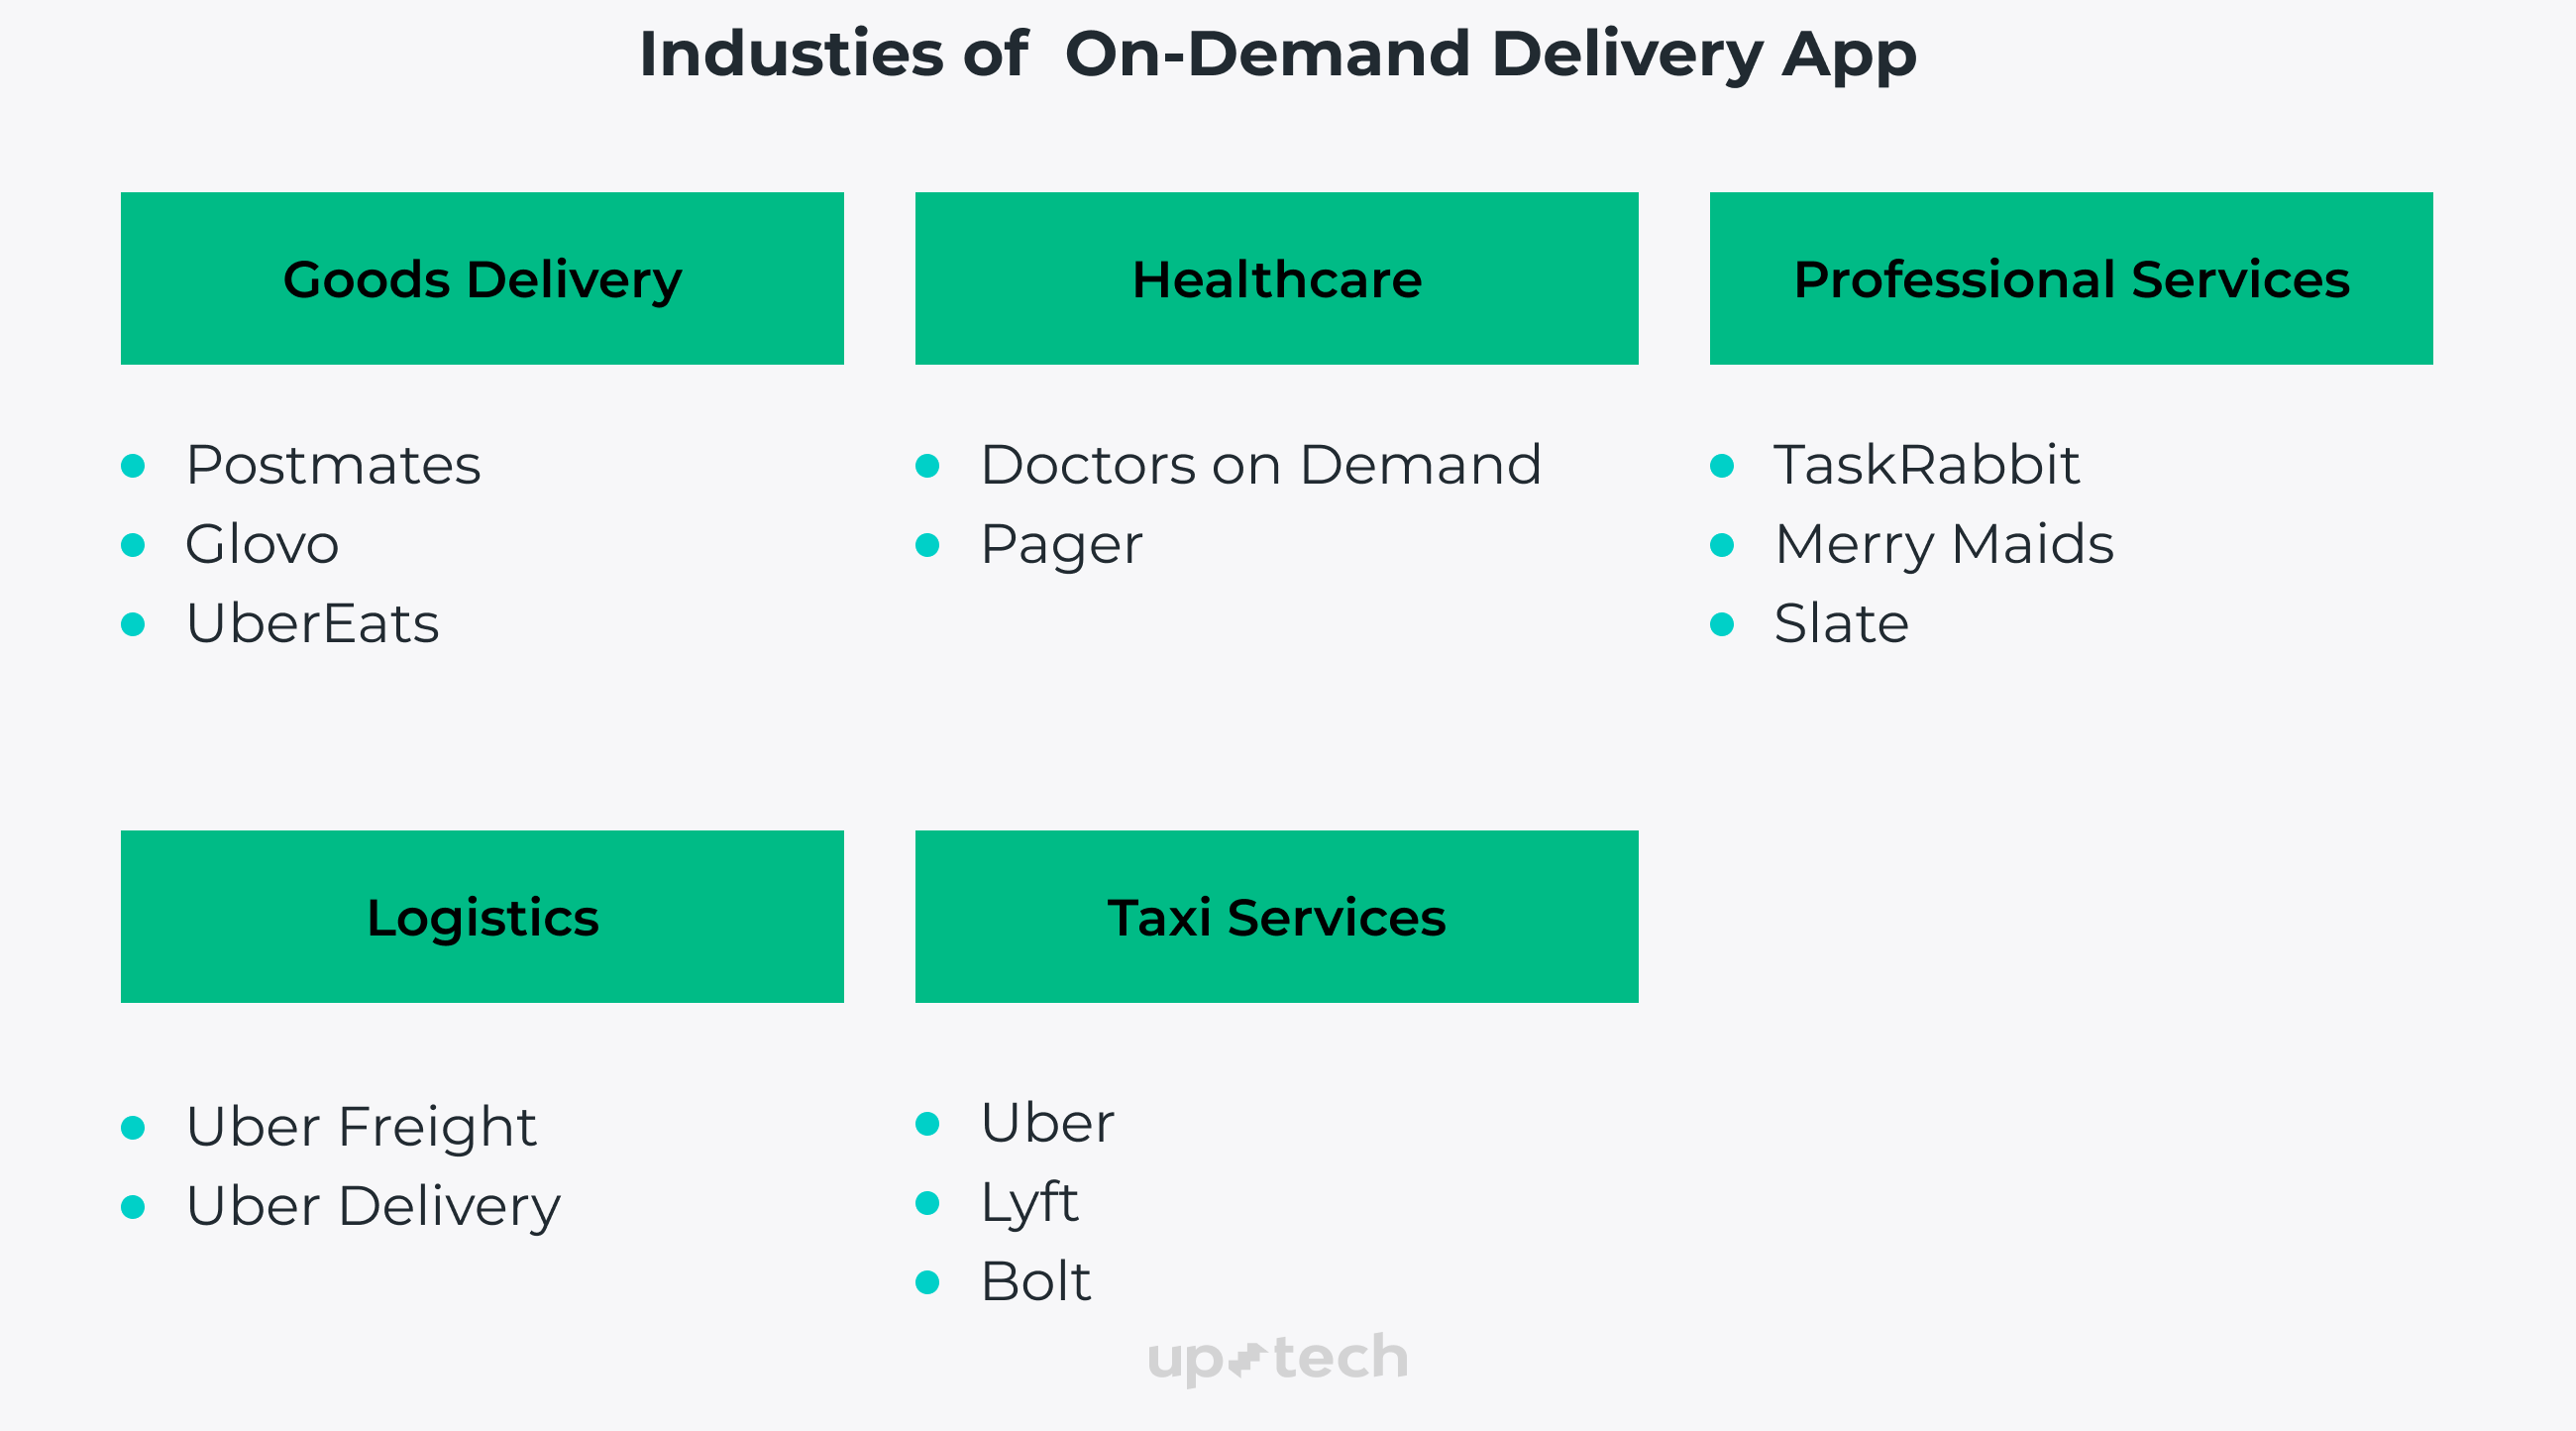 industries of Ondemand delivery app